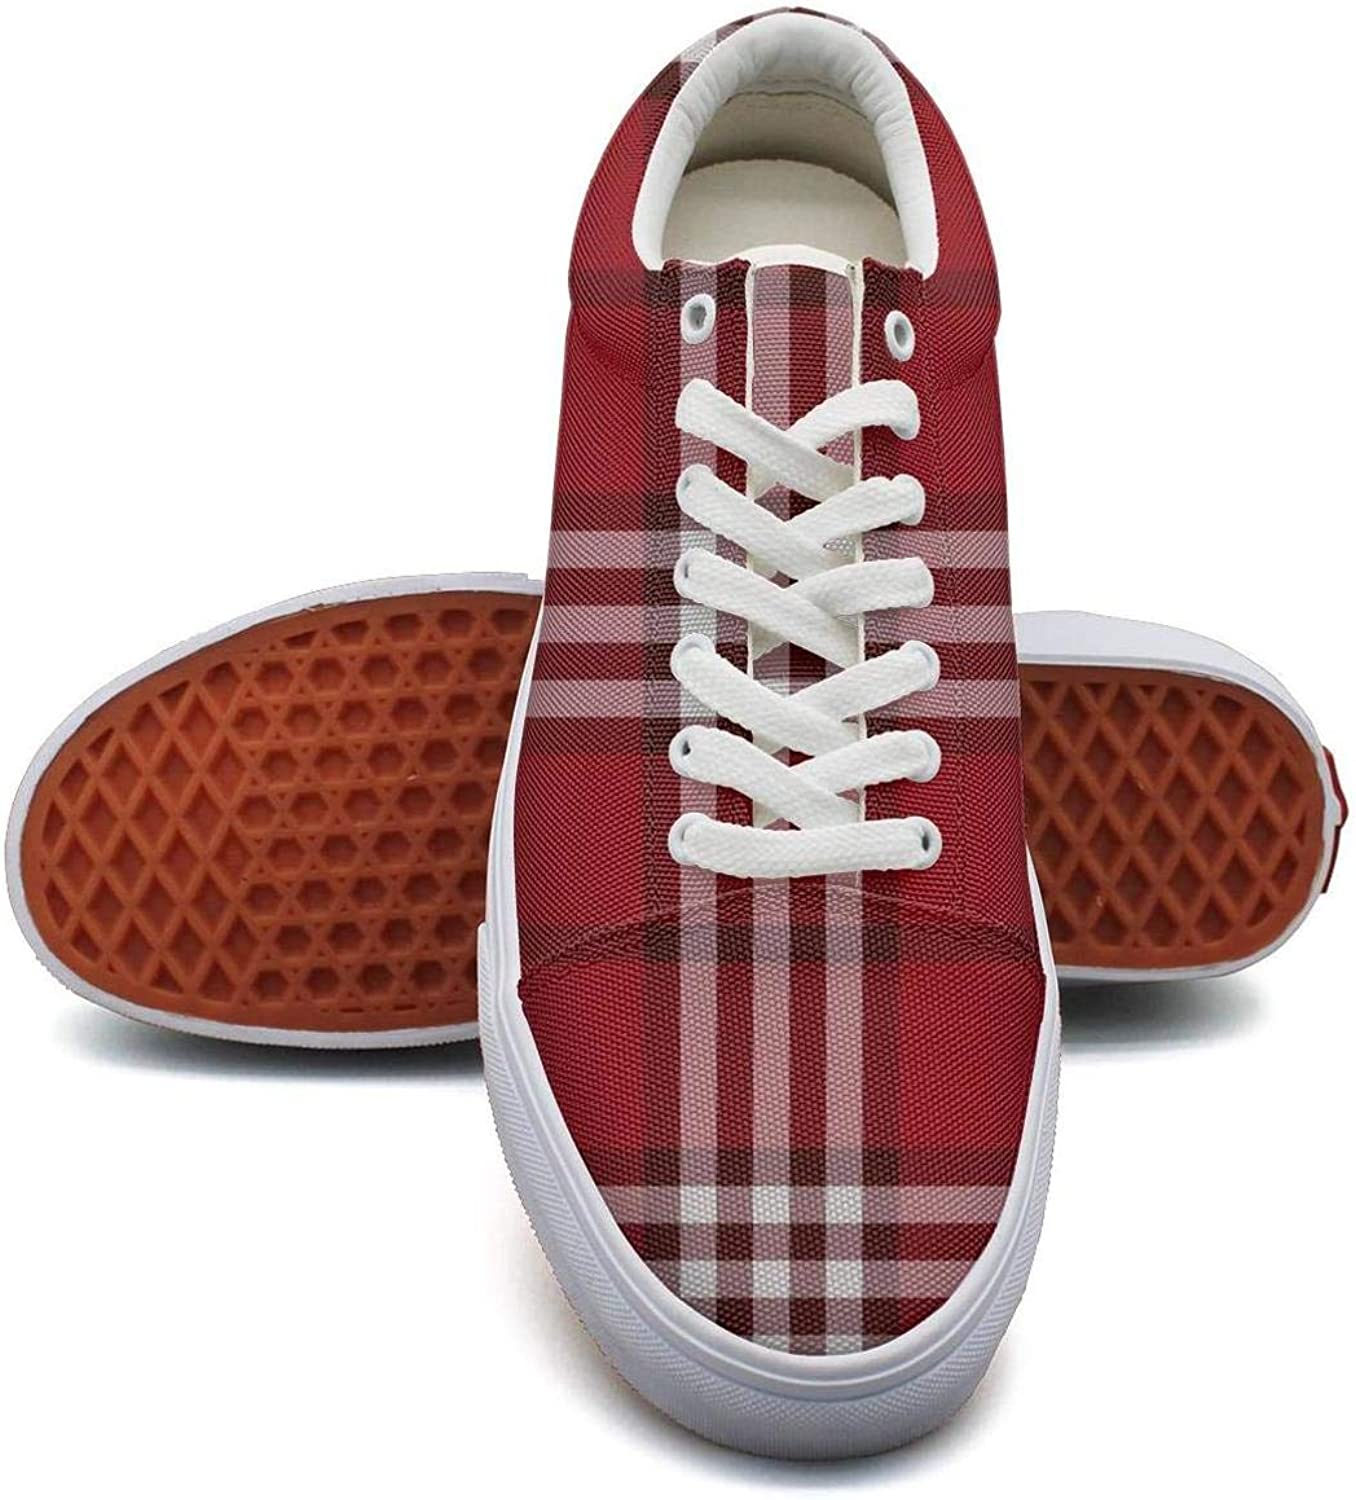 KSOWE3KD Woman Mens' Microfiber Flat shoes White Lattice Red Checkerboard Print Unisex Cushion shoes